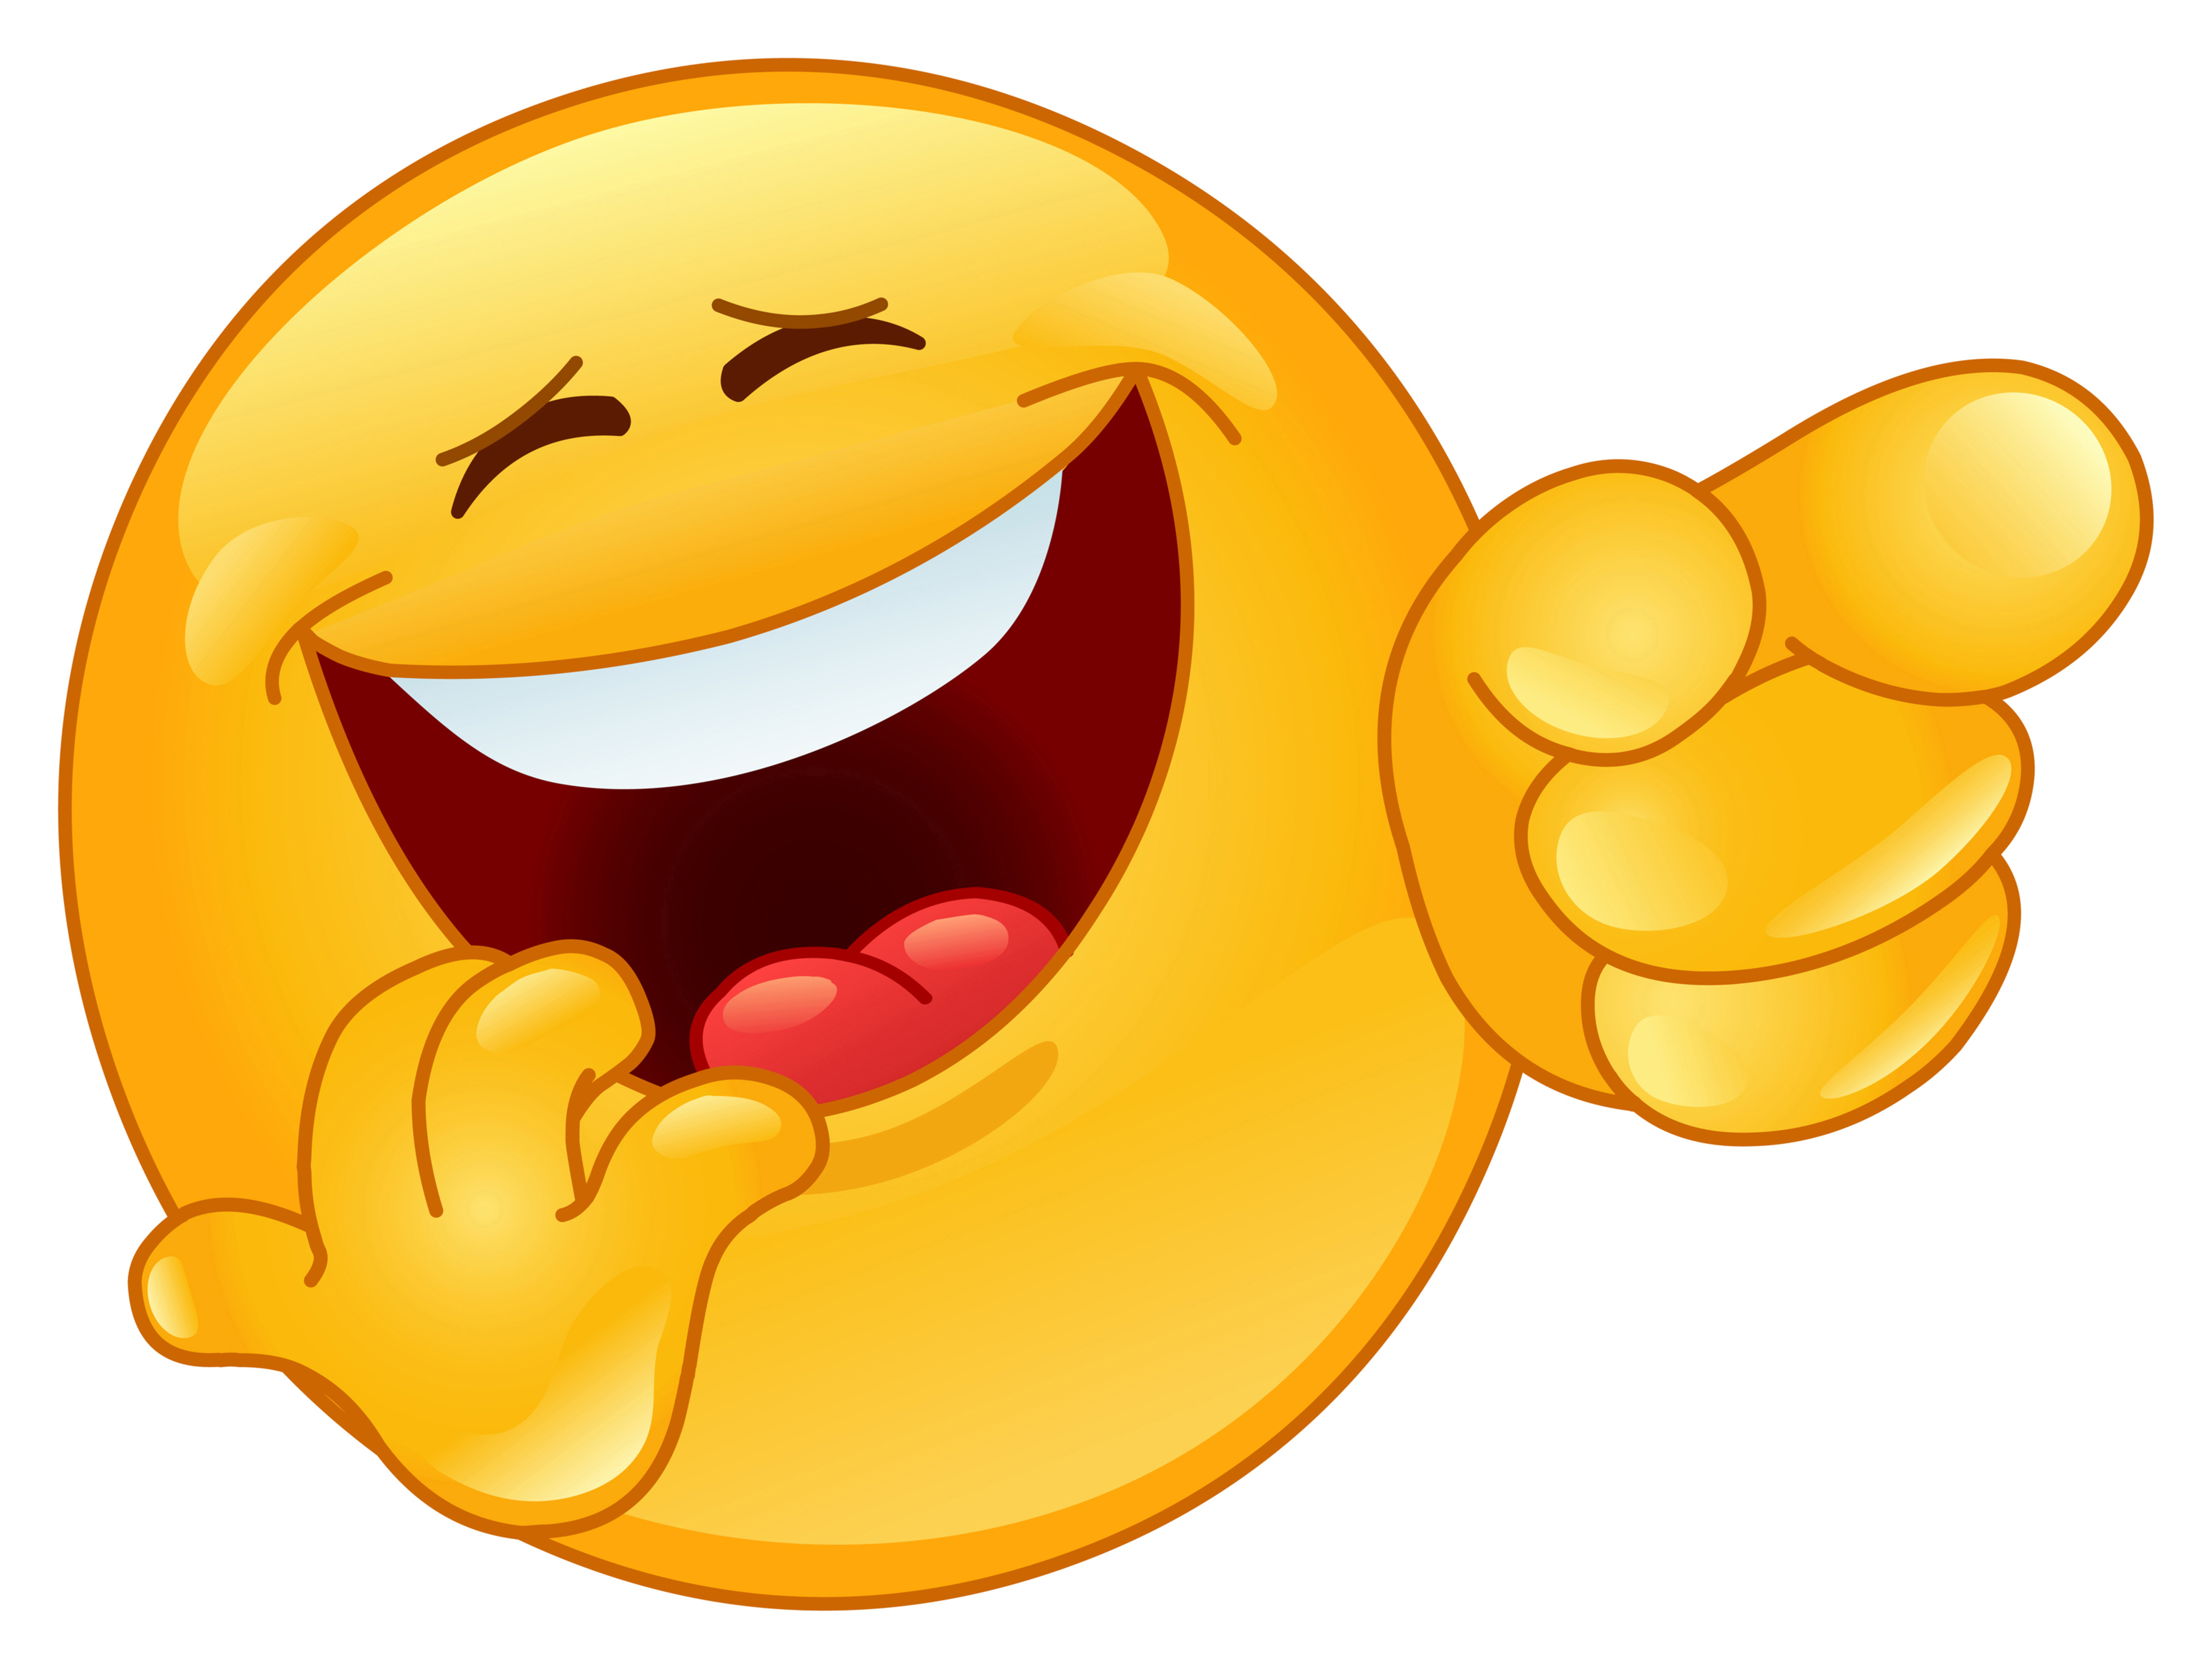 Animated Laughing Clipart - Clipart - 1207.2KB